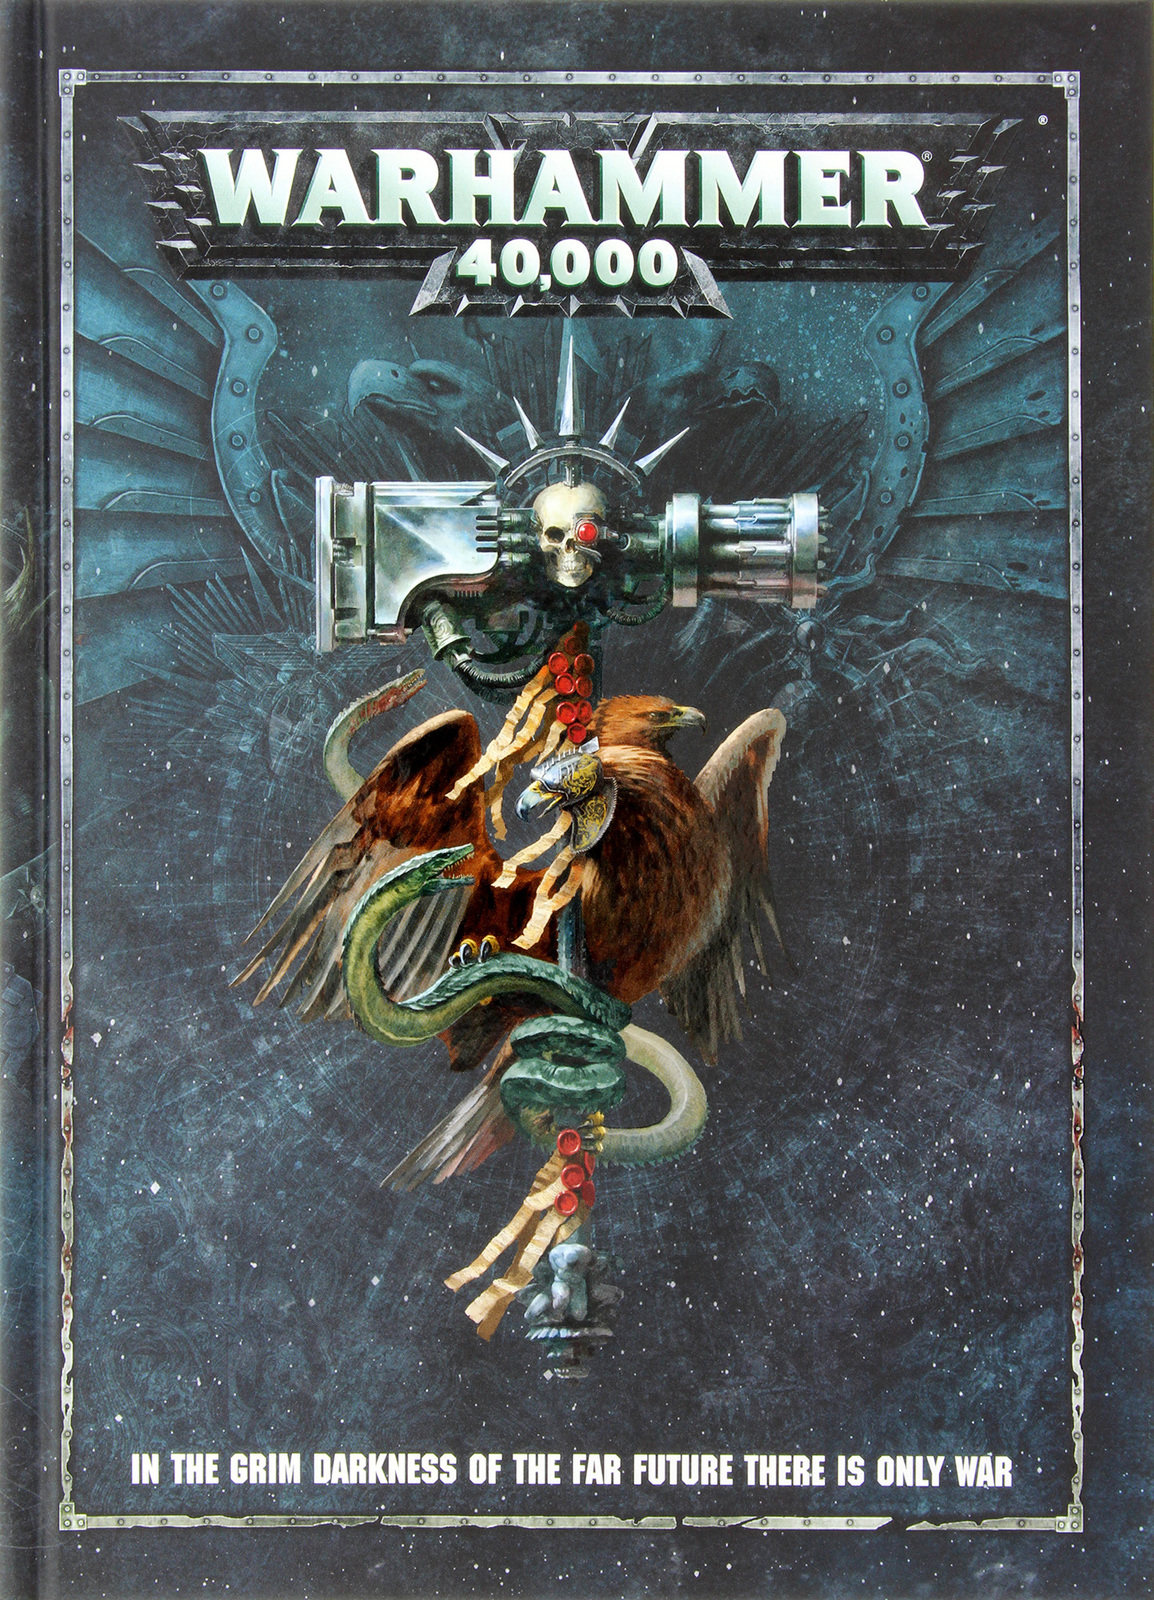 Warhammer 40,000 Rulebook (8th Edition) image